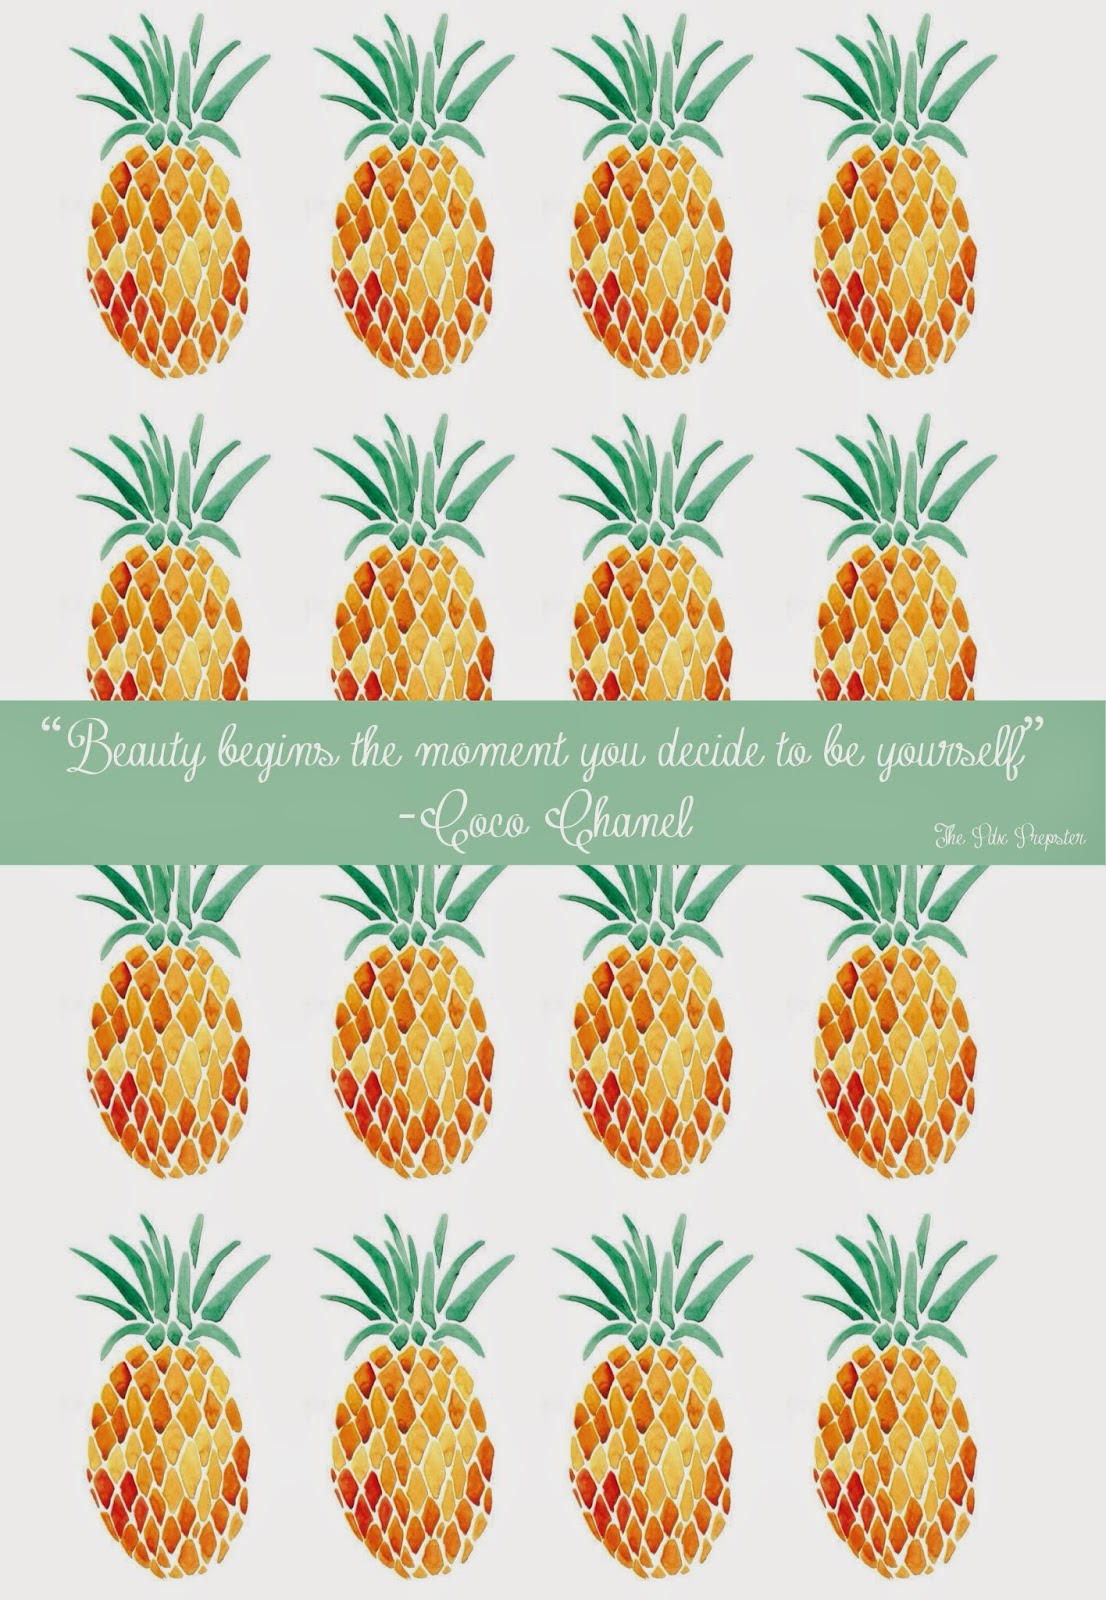 Lilly Pulitzer Quotes Wallpaper Tumblr Backgrounds Moondiy